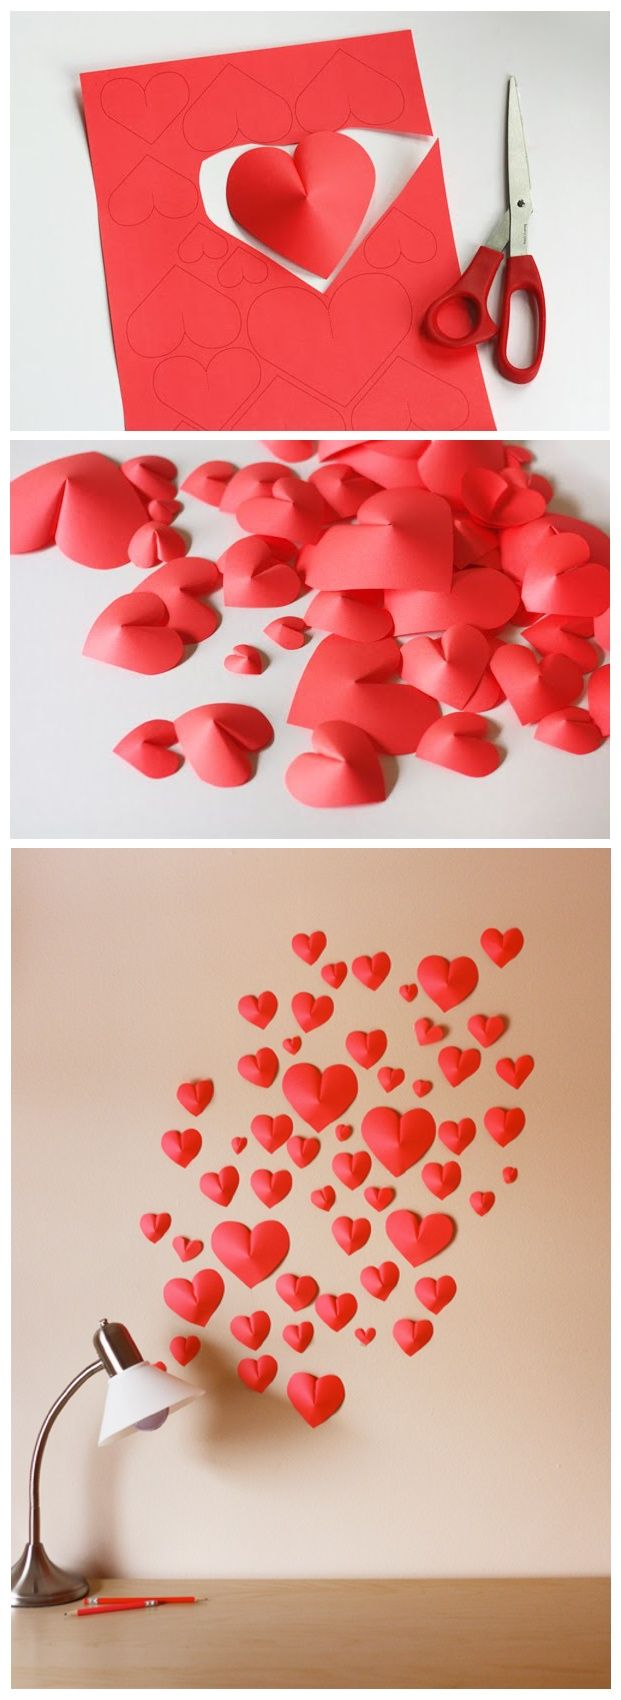 Best 25 heart template ideas on pinterest printable for Decorate for valentines day